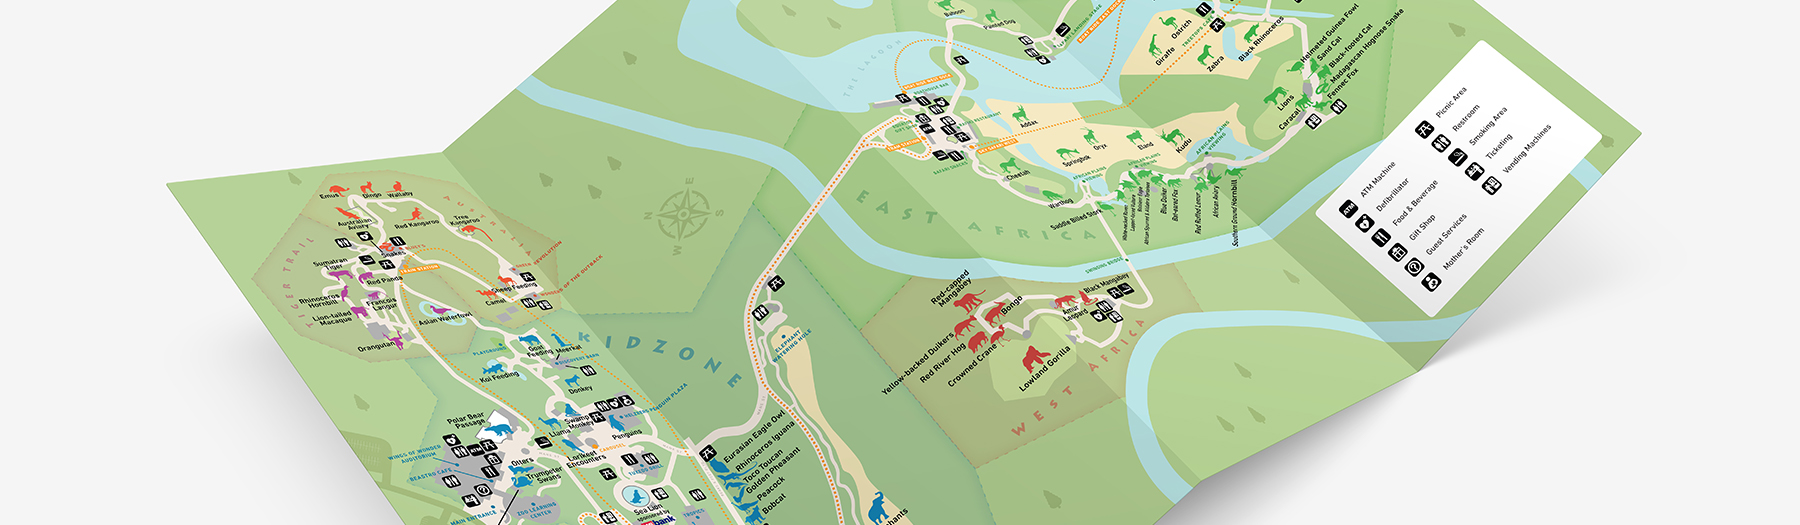 Kansas City Web Design And Print Material For The New Kansas City Zoo Map